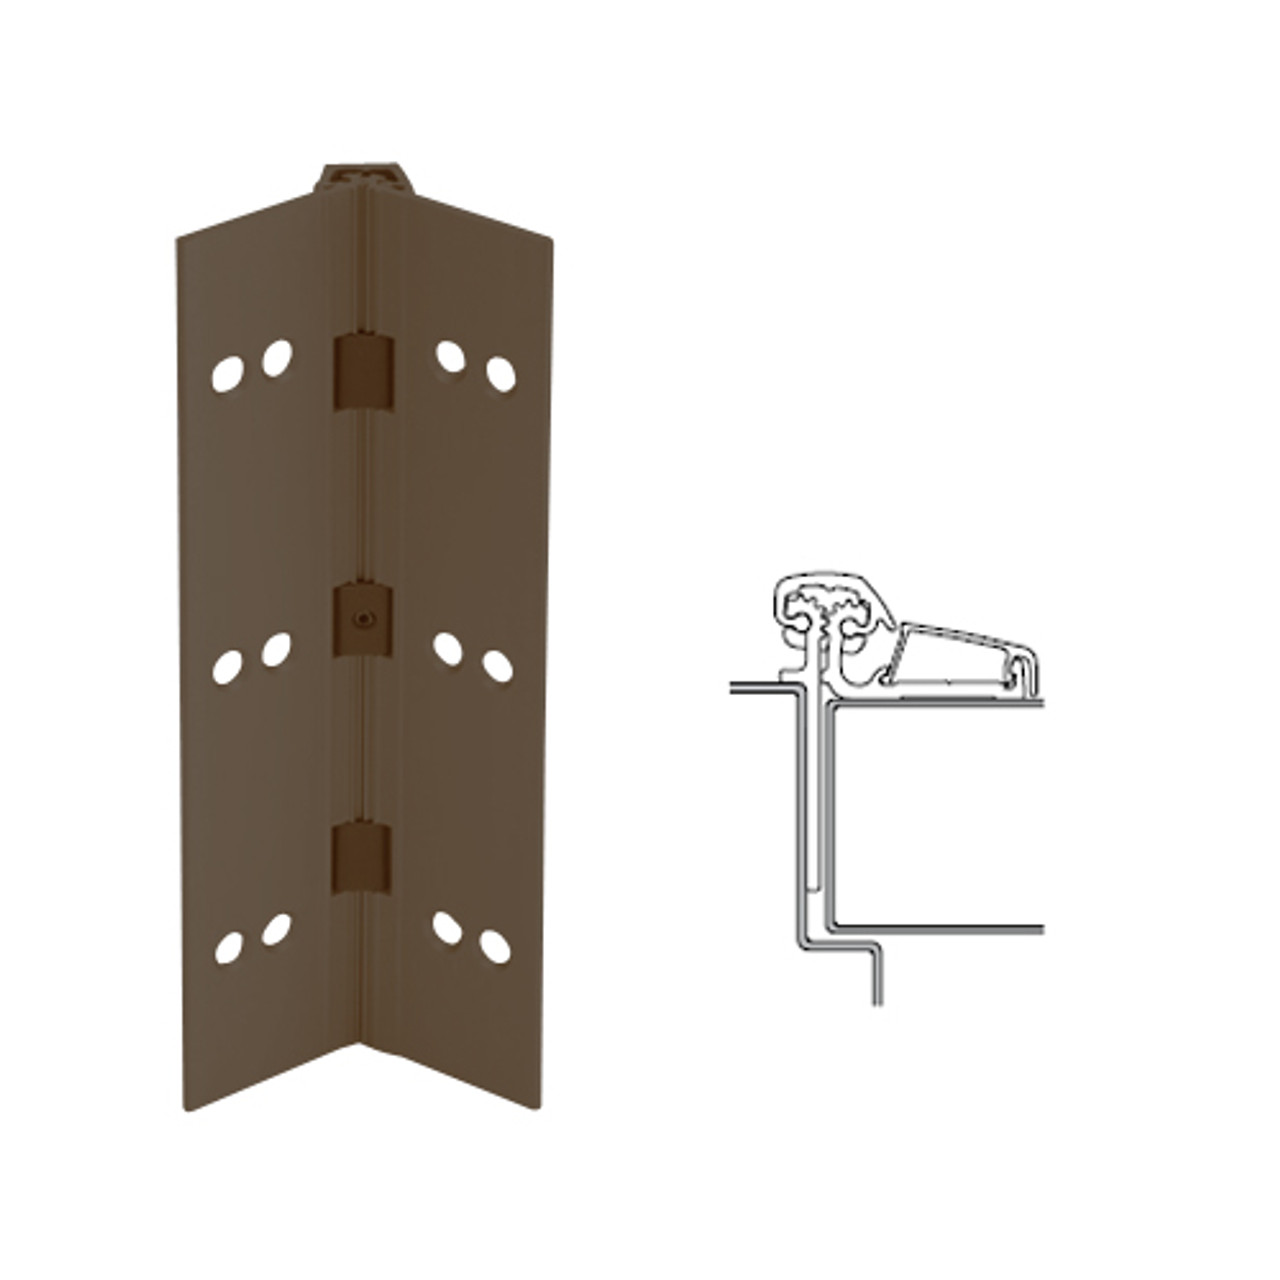 053XY-313AN-83-SECHM IVES Adjustable Half Surface Continuous Geared Hinges with Security Screws - Hex Pin Drive in Dark Bronze Anodized